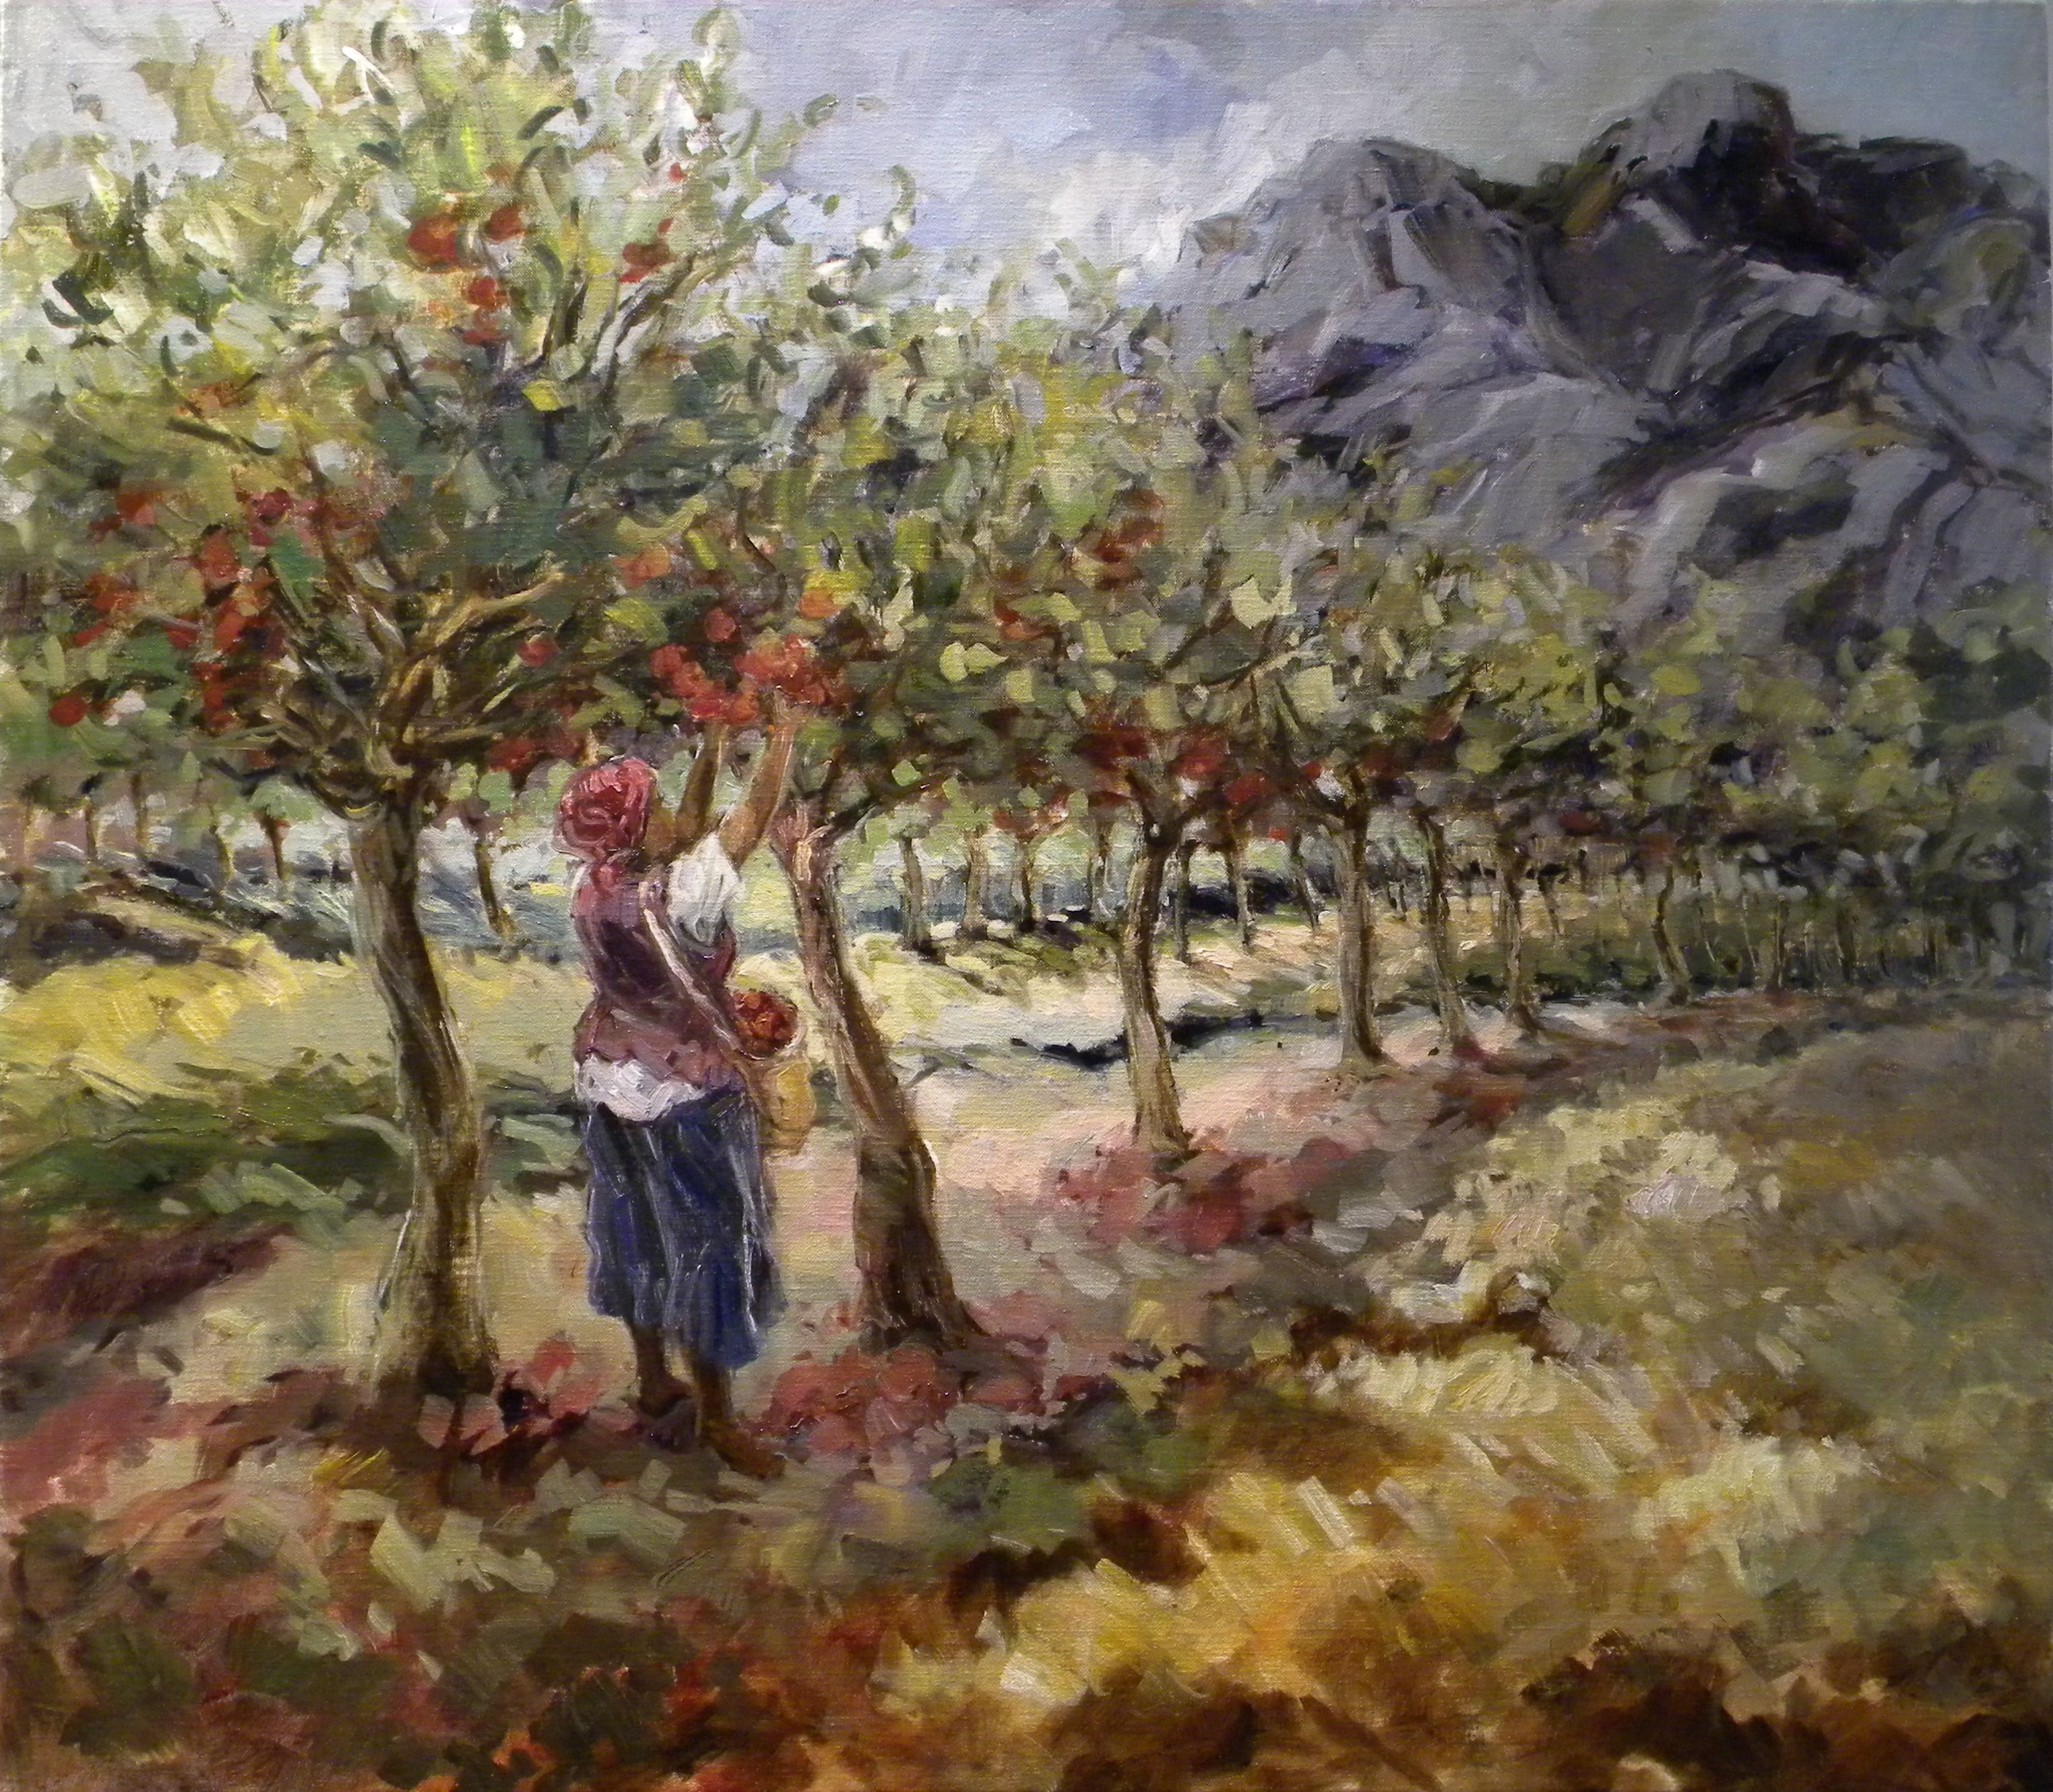 Aviva Maree. Picking Apples